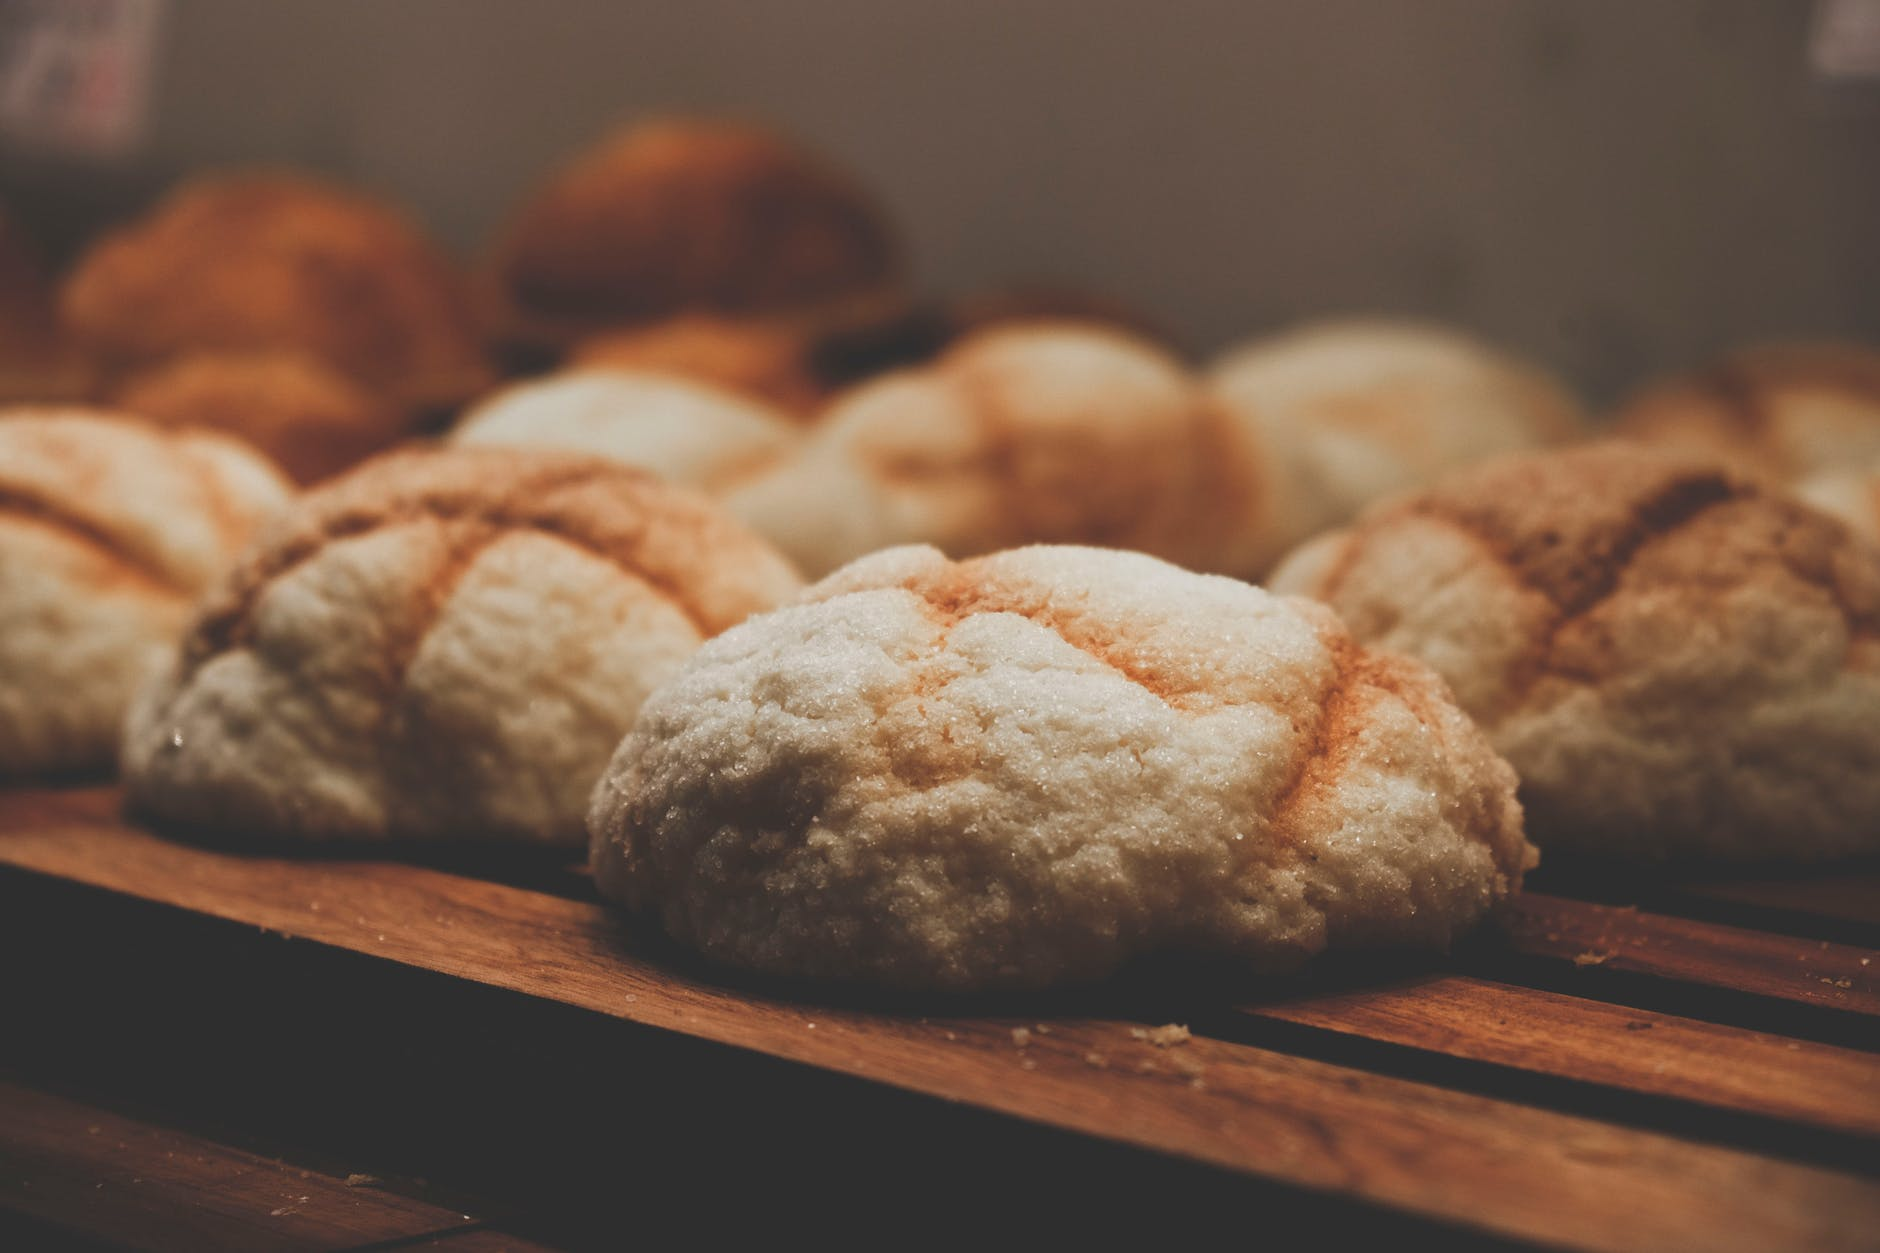 baked cookies on brown wooden surface